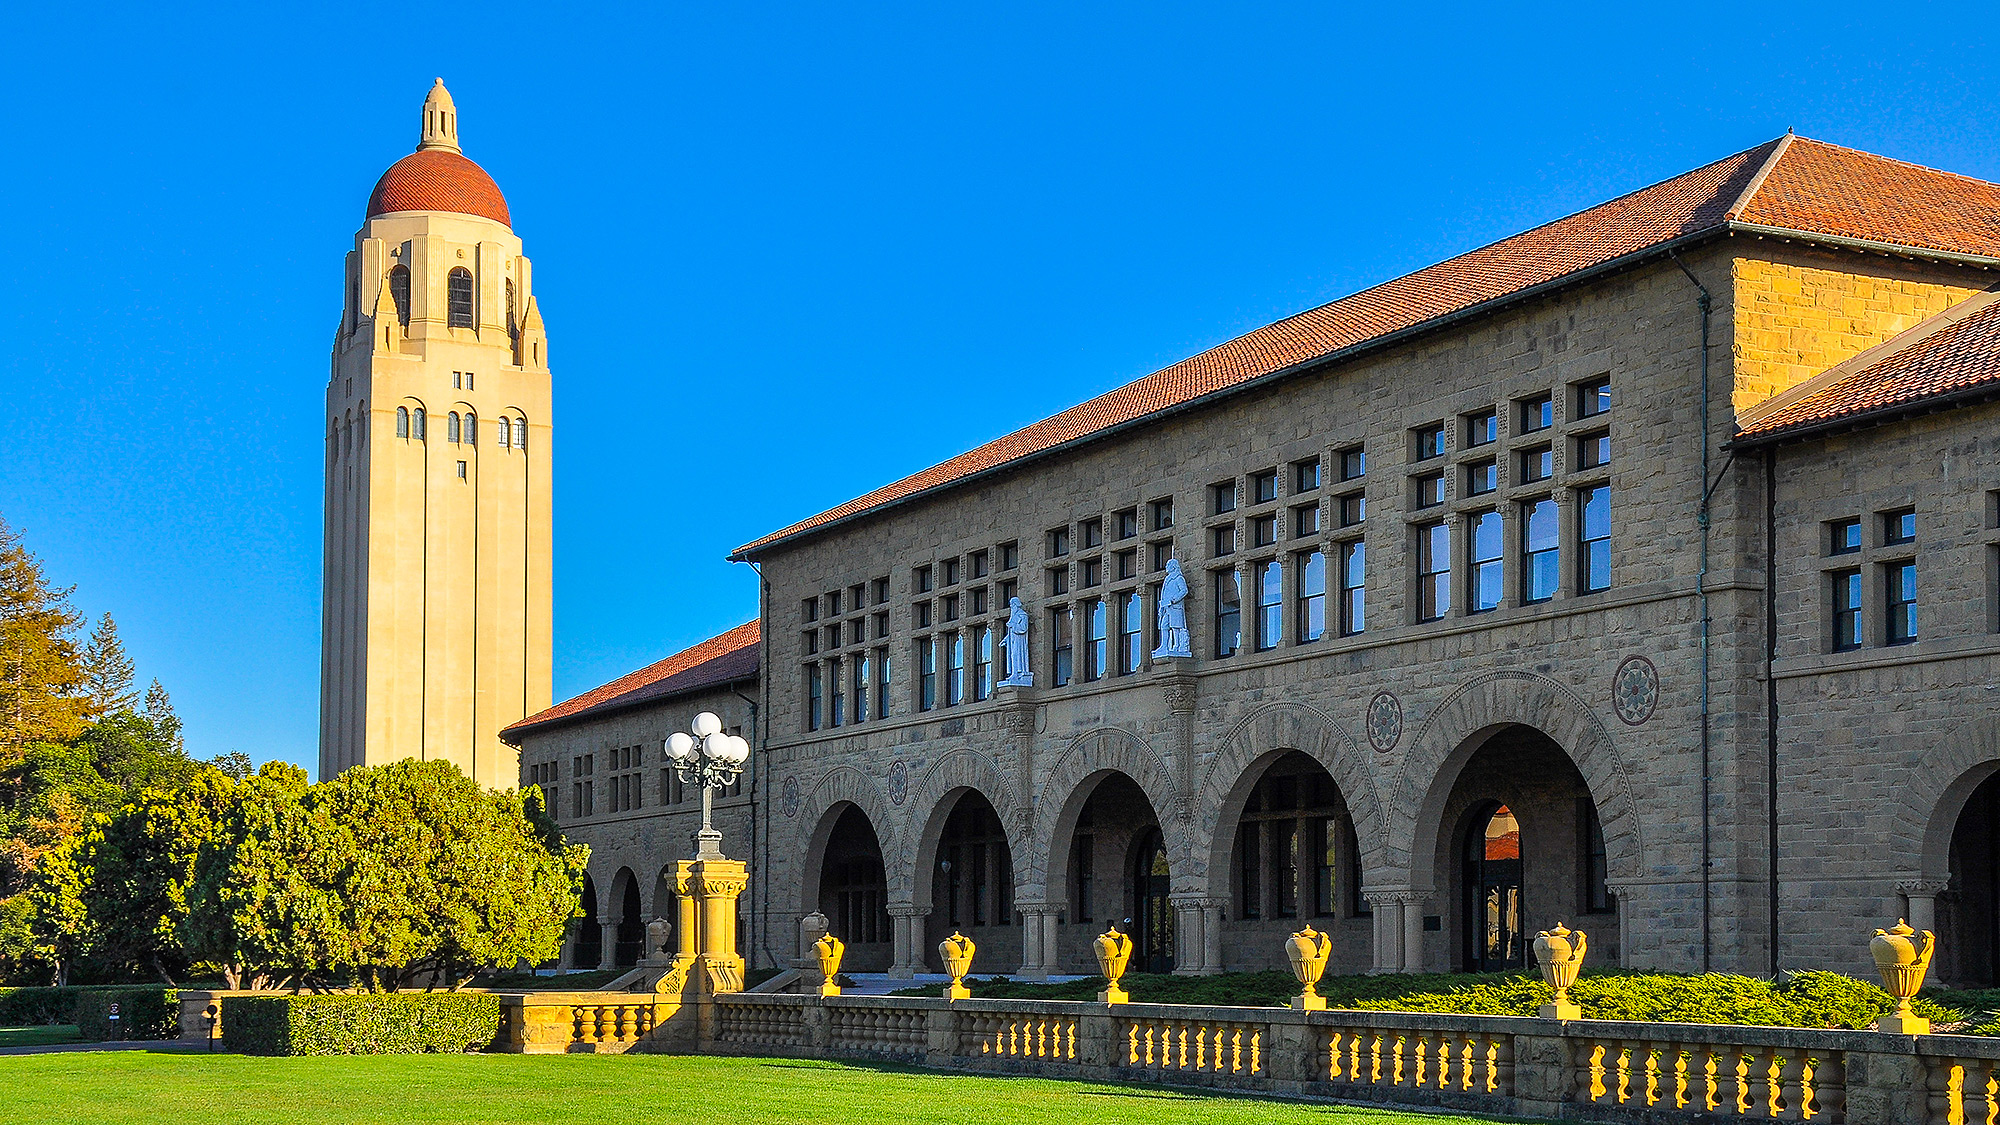 Hoover Tower, Stanford University, Palo Alto, CA